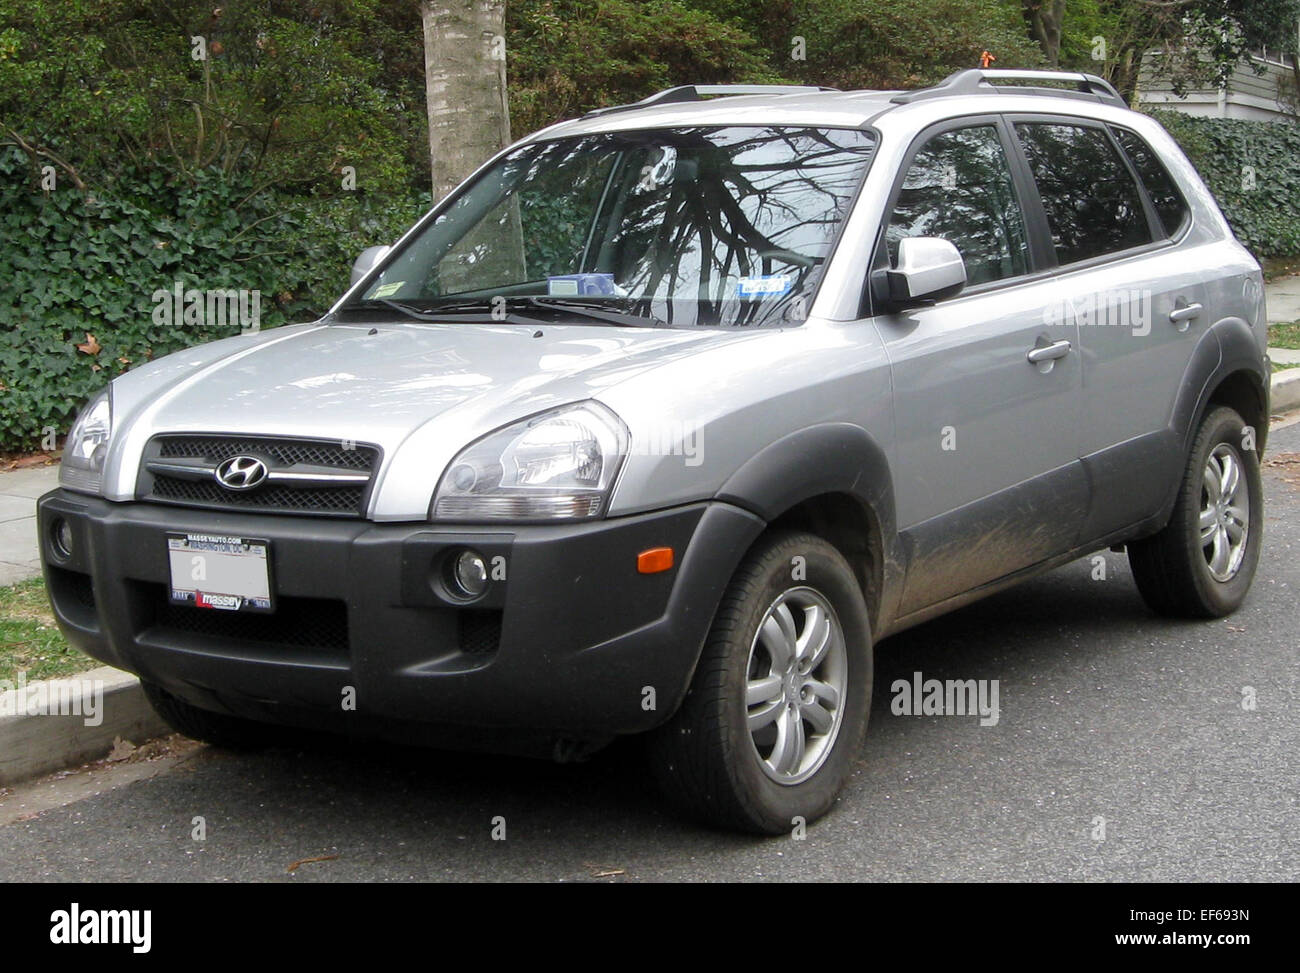 high cabin to com hyundai dnextauto click tucson view space here image reviews resolution